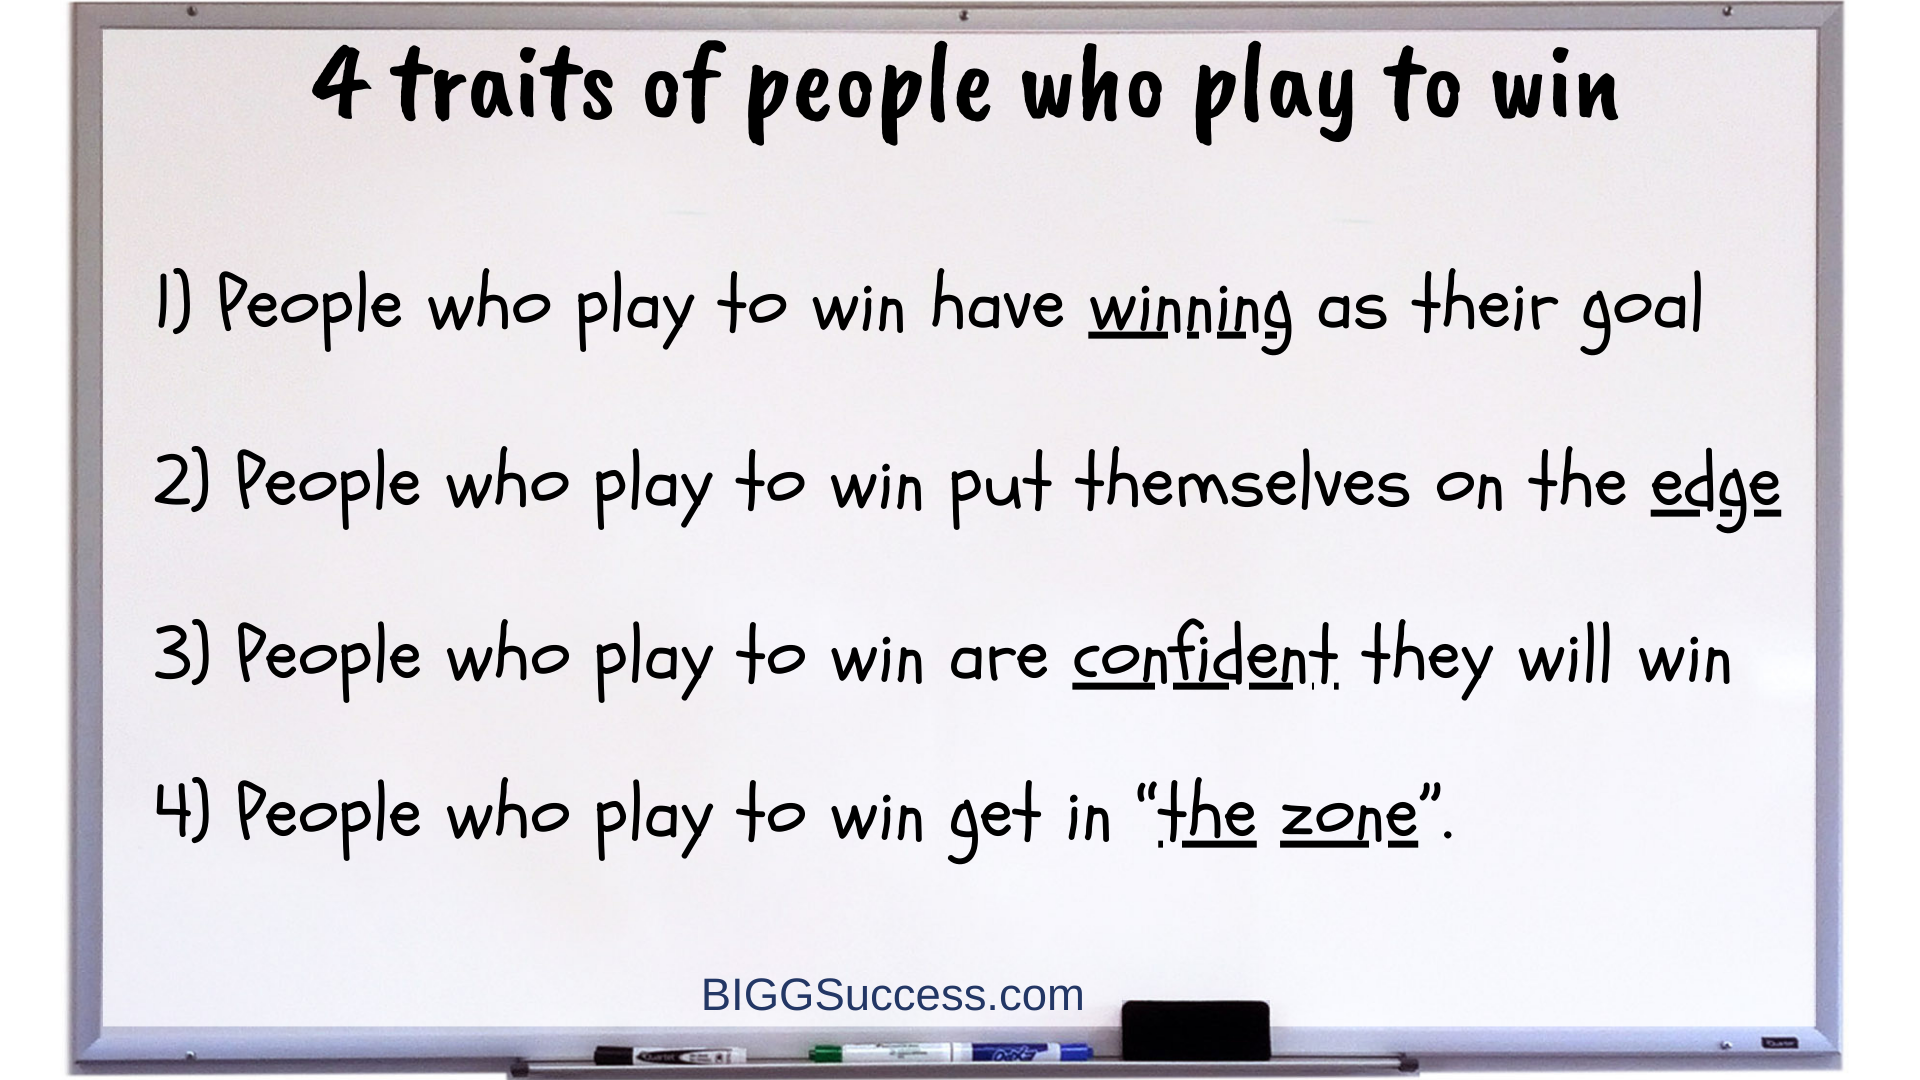 Whiteboard 1067-4 Traits of People Who Play to Win